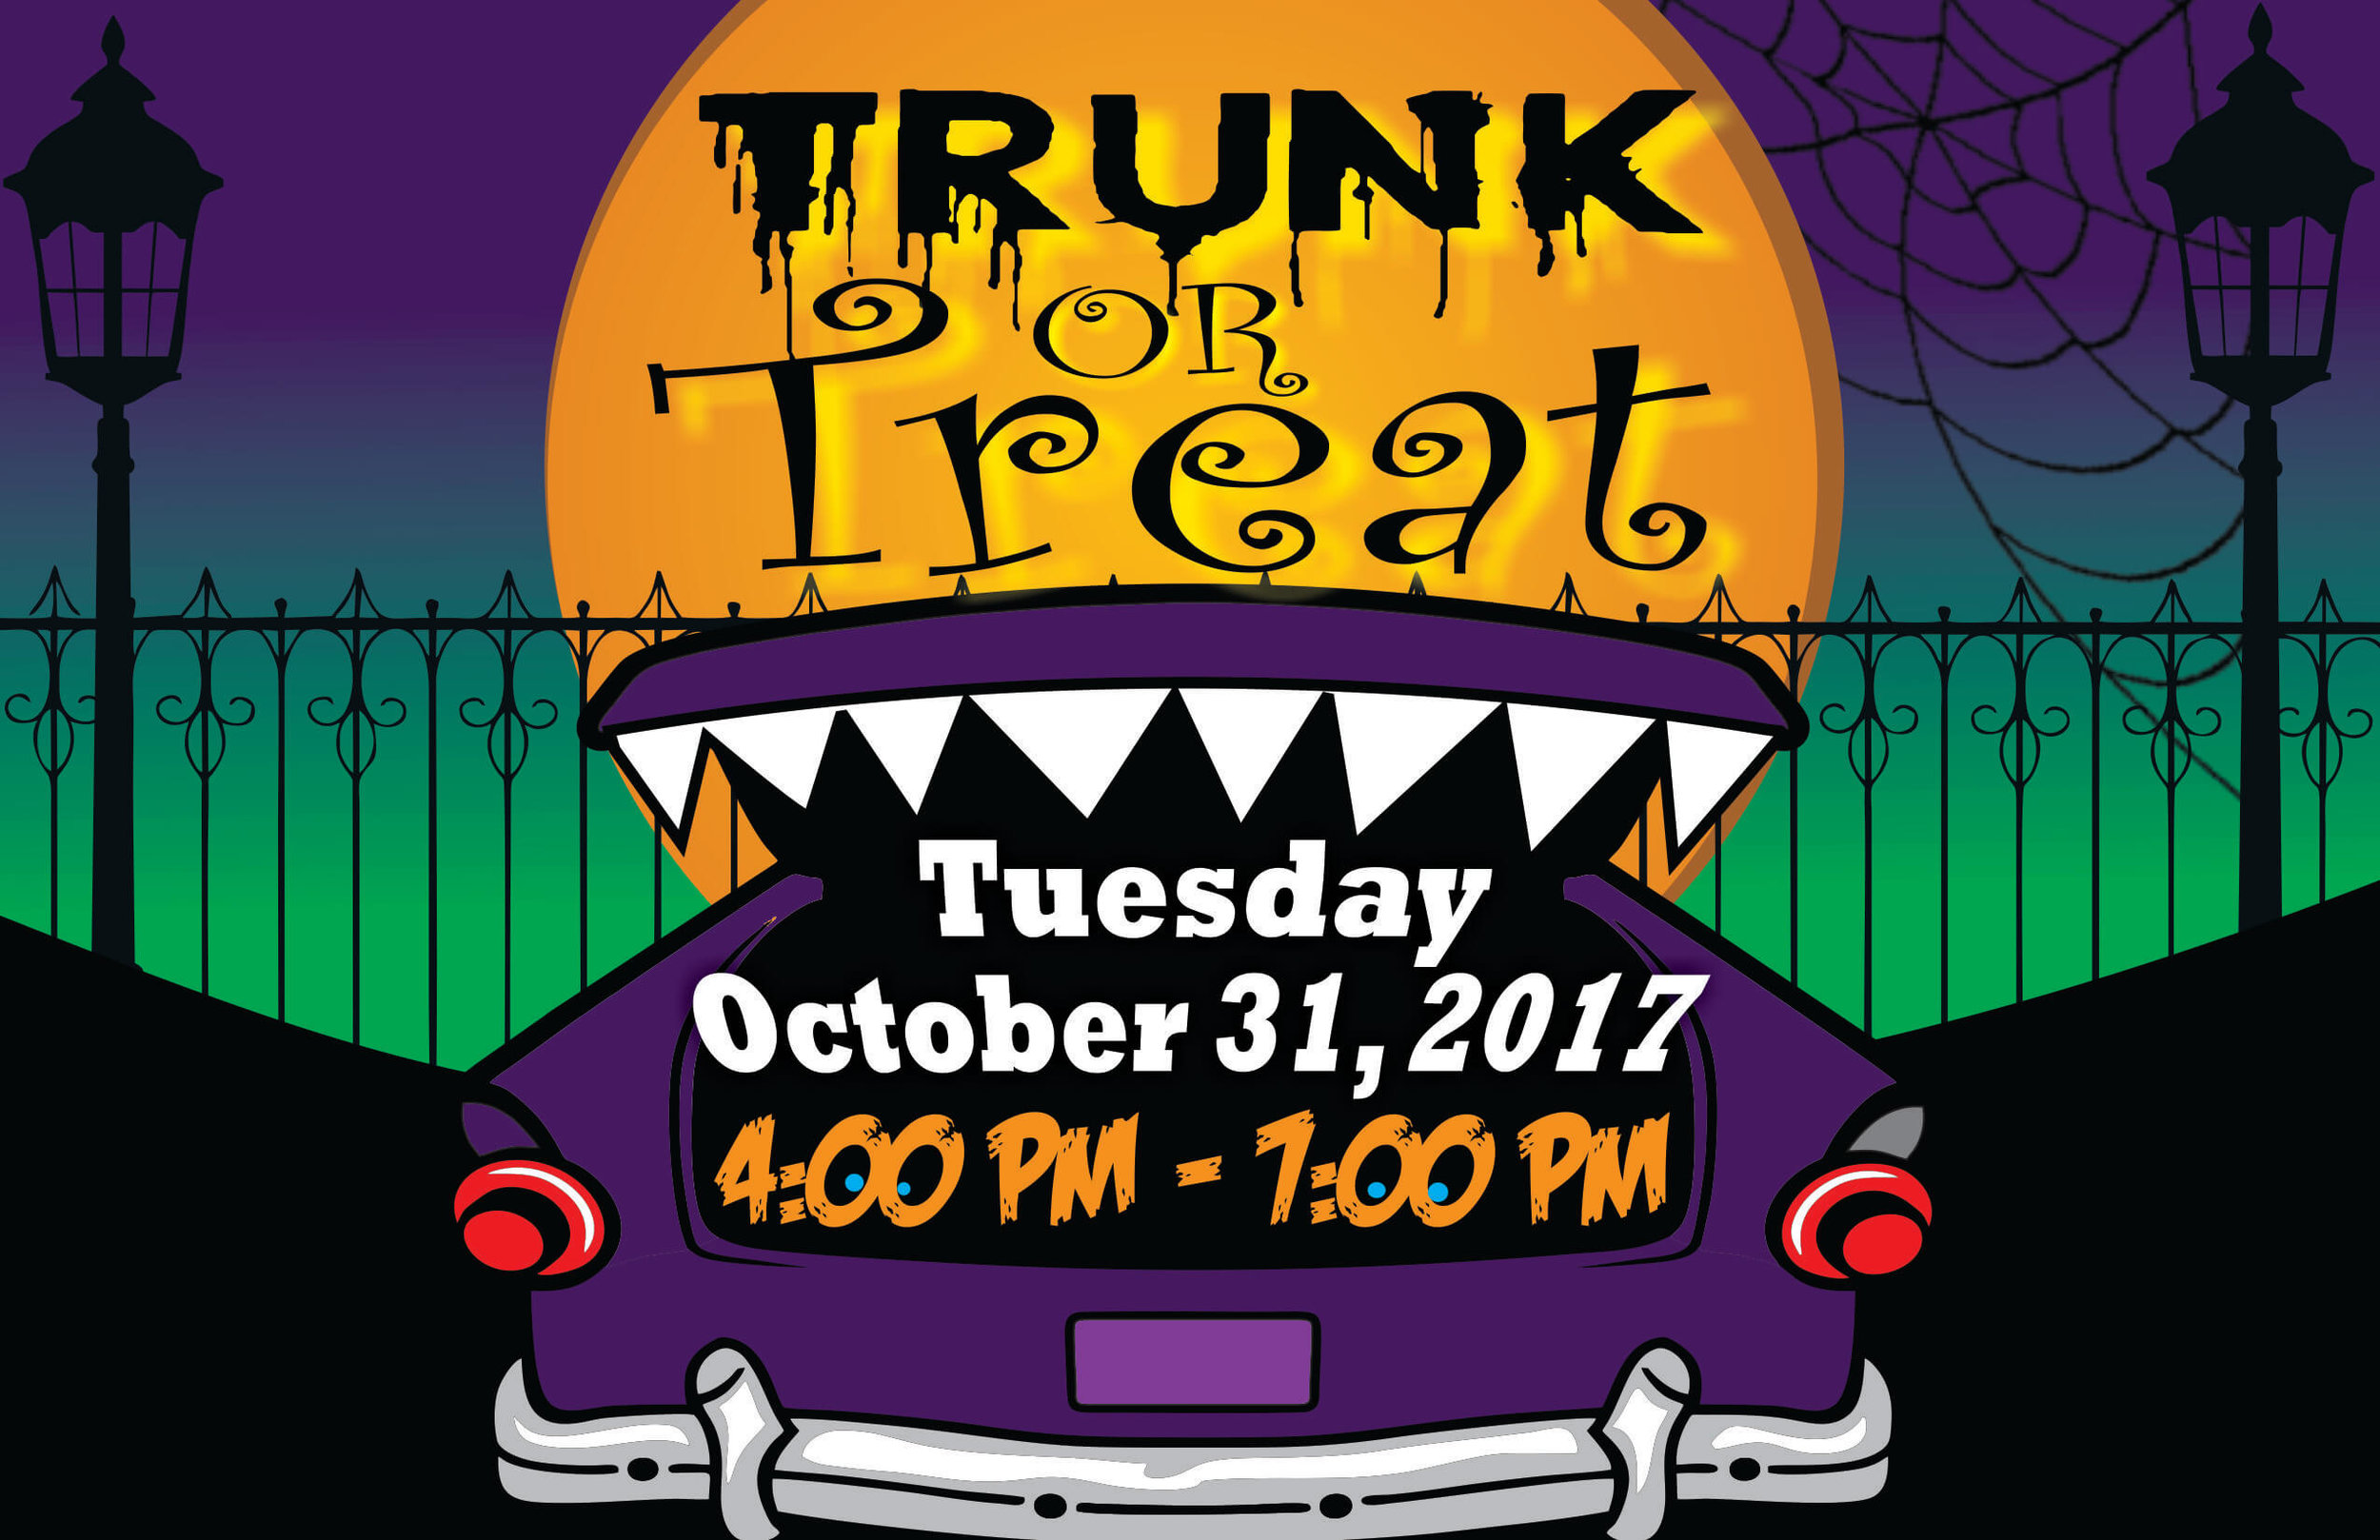 Royal Lanes - Halloween Trunk or Treat Flyer 2017-1.jpg